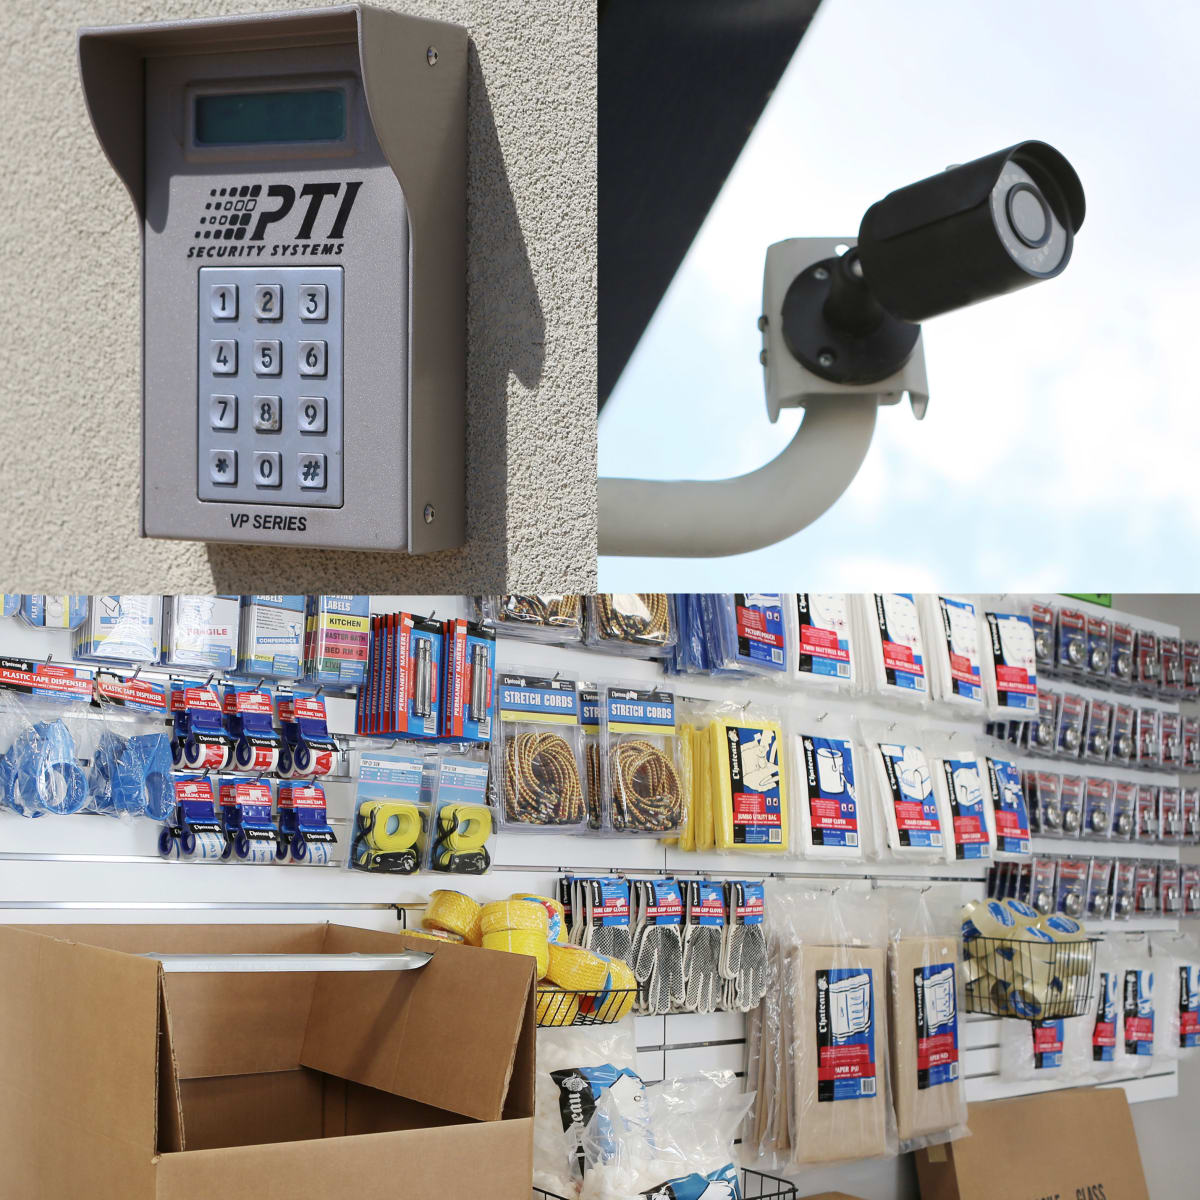 We provide 24 hour security monitoring and sell various moving and packing supplies at Midgard Self Storage in Wilmington, North Carolina